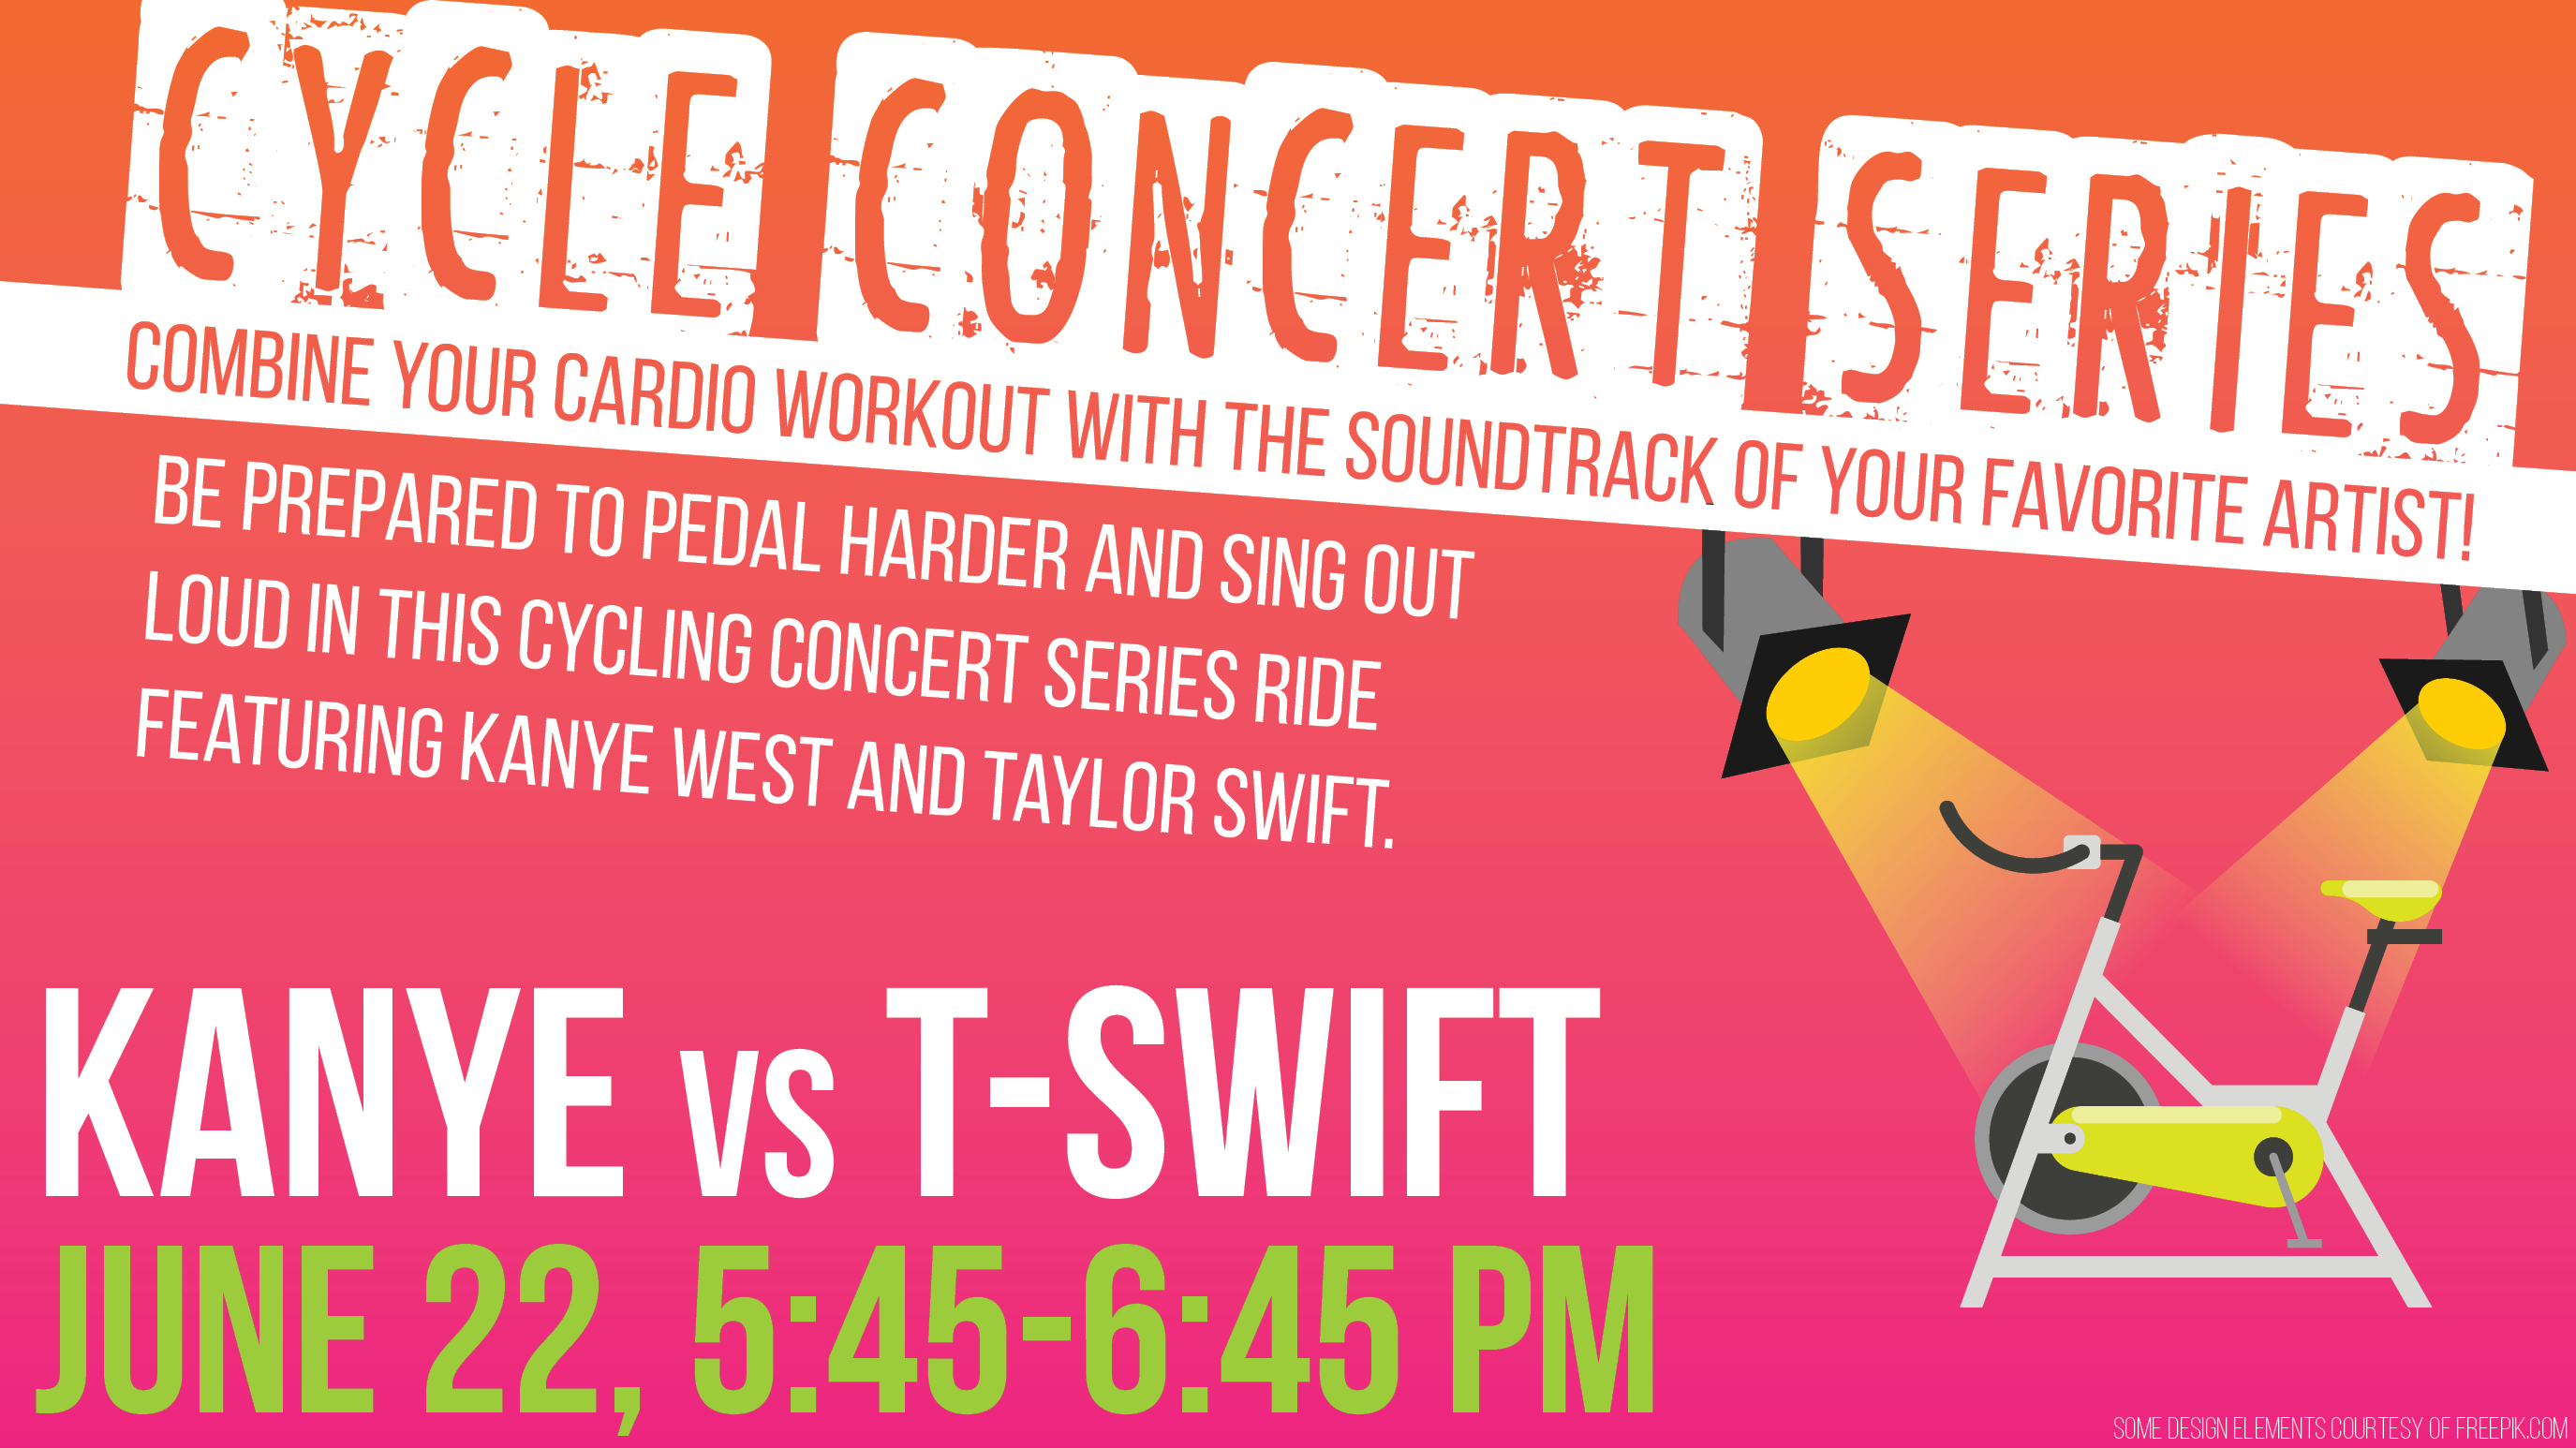 Cycle Concert Series